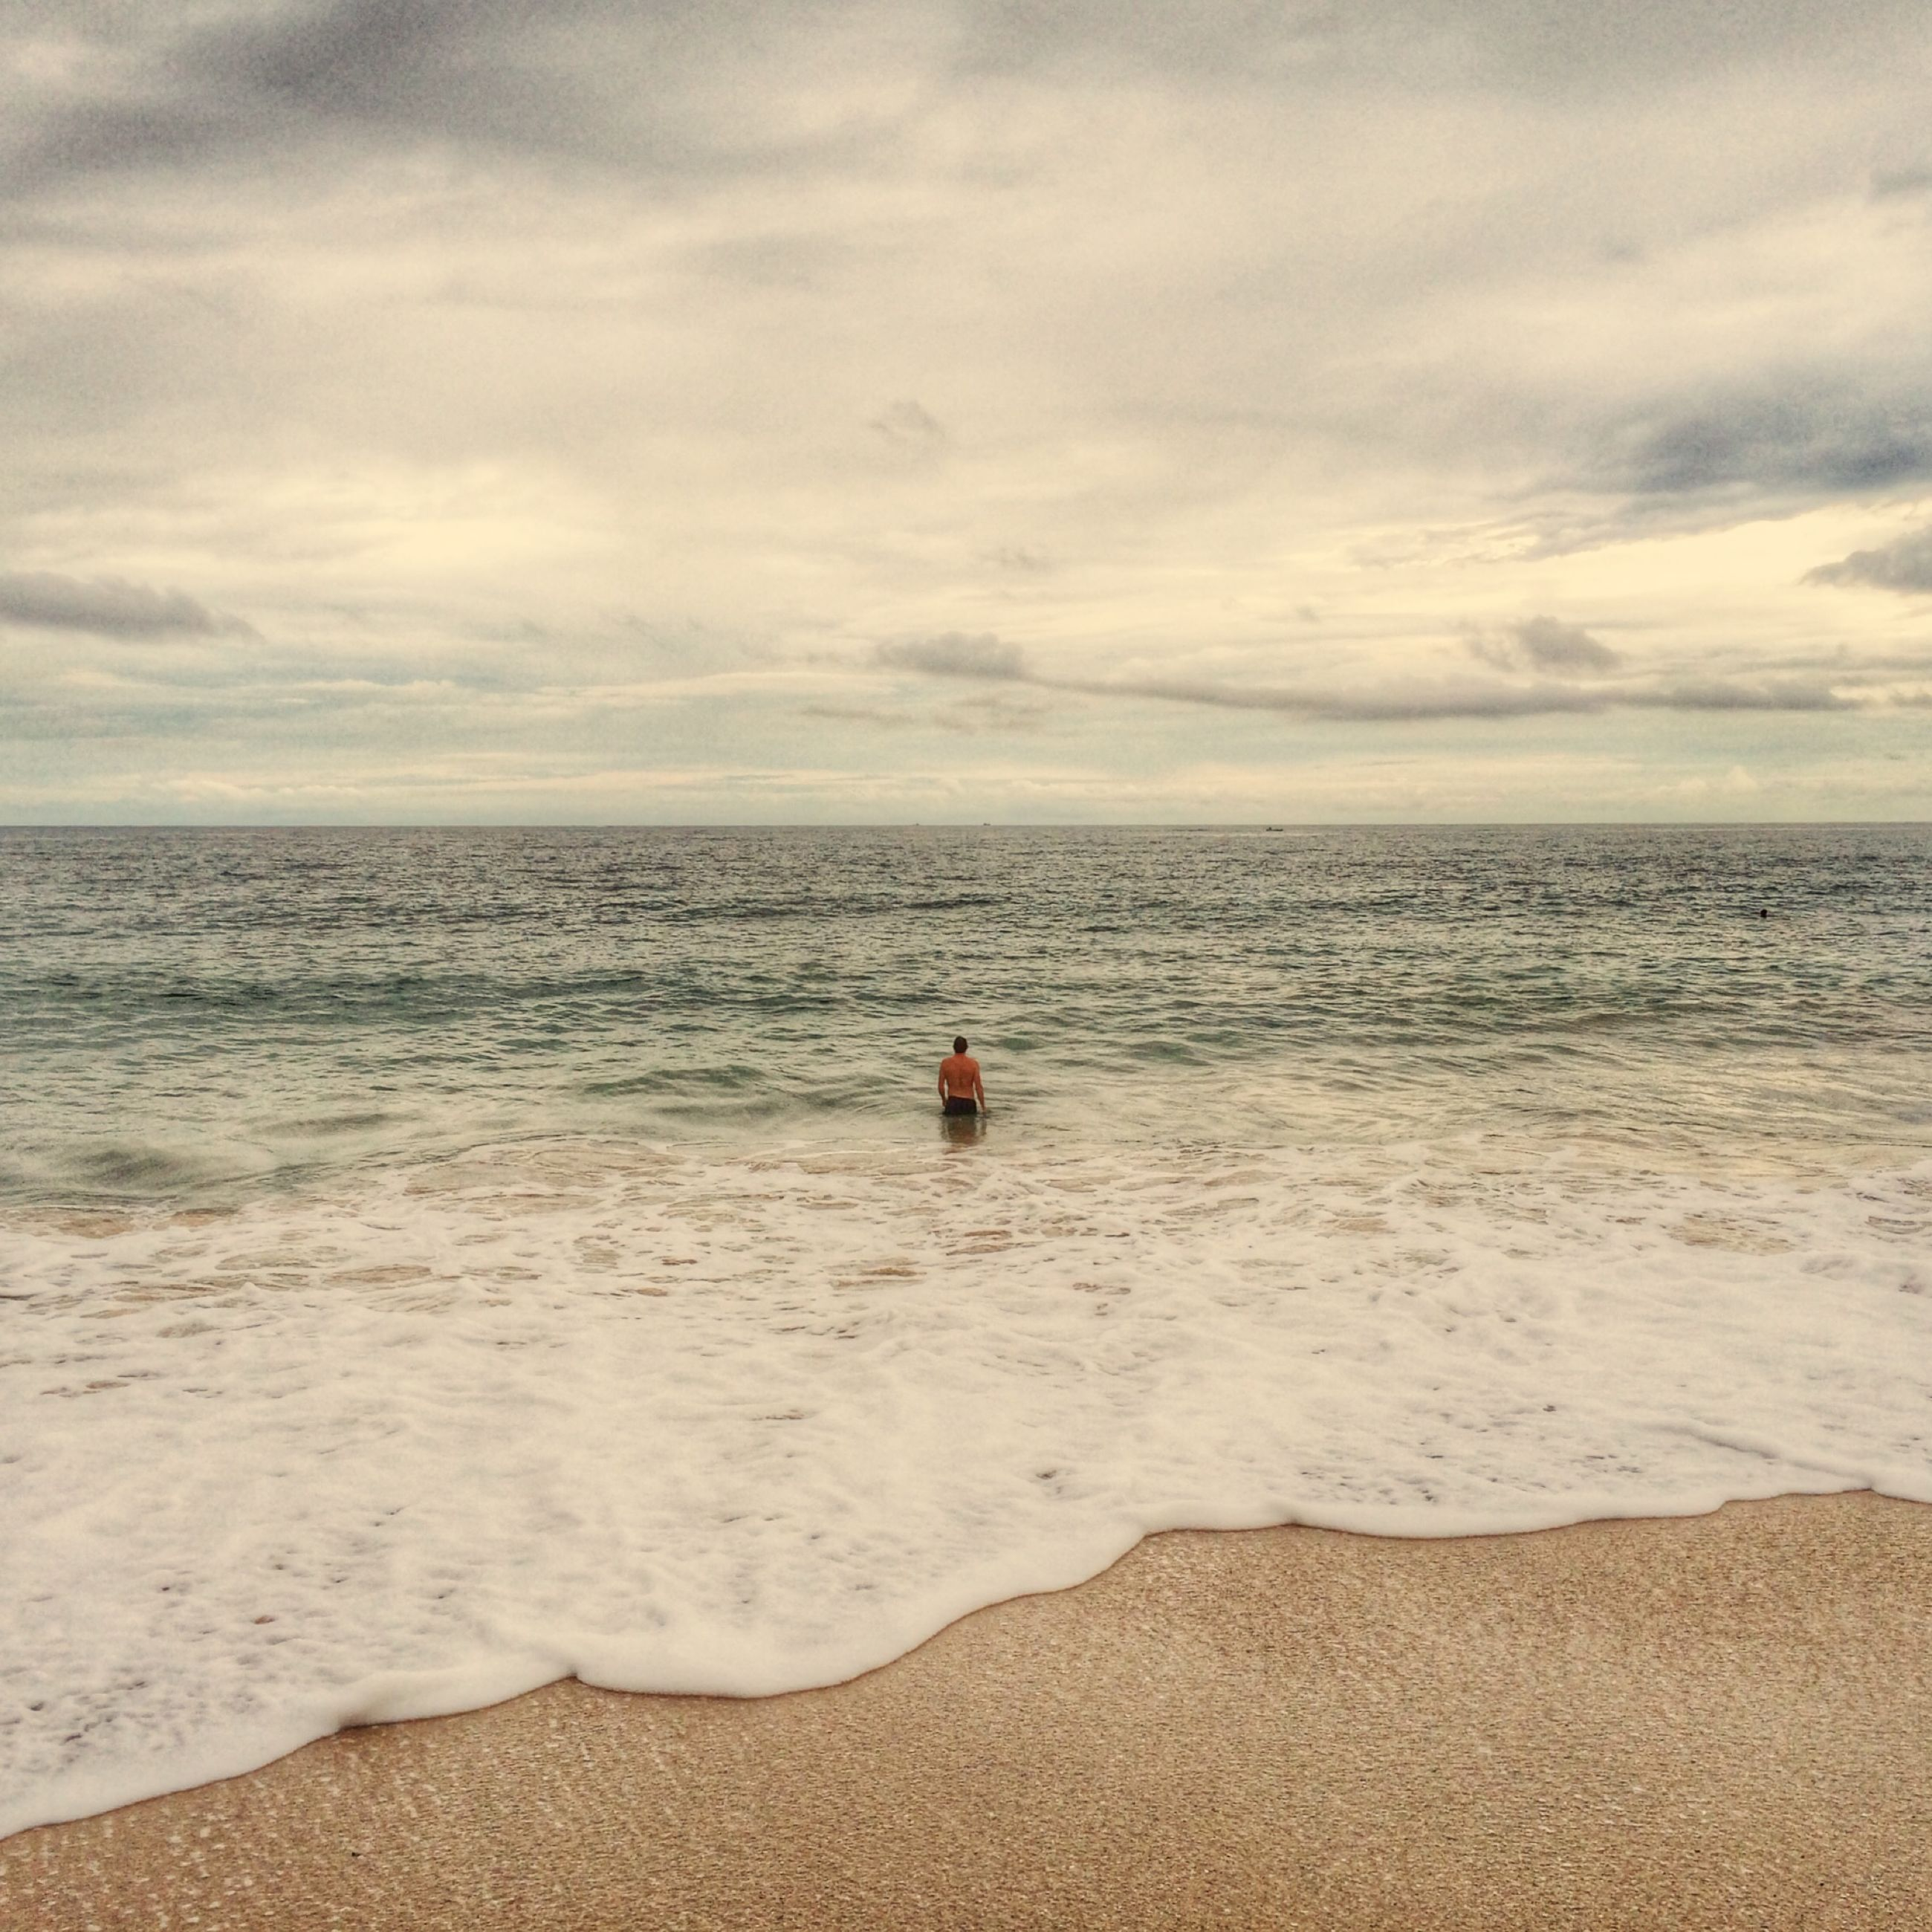 sea, horizon over water, beach, water, sky, shore, leisure activity, scenics, lifestyles, cloud - sky, wave, beauty in nature, sand, tranquil scene, tranquility, vacations, nature, cloudy